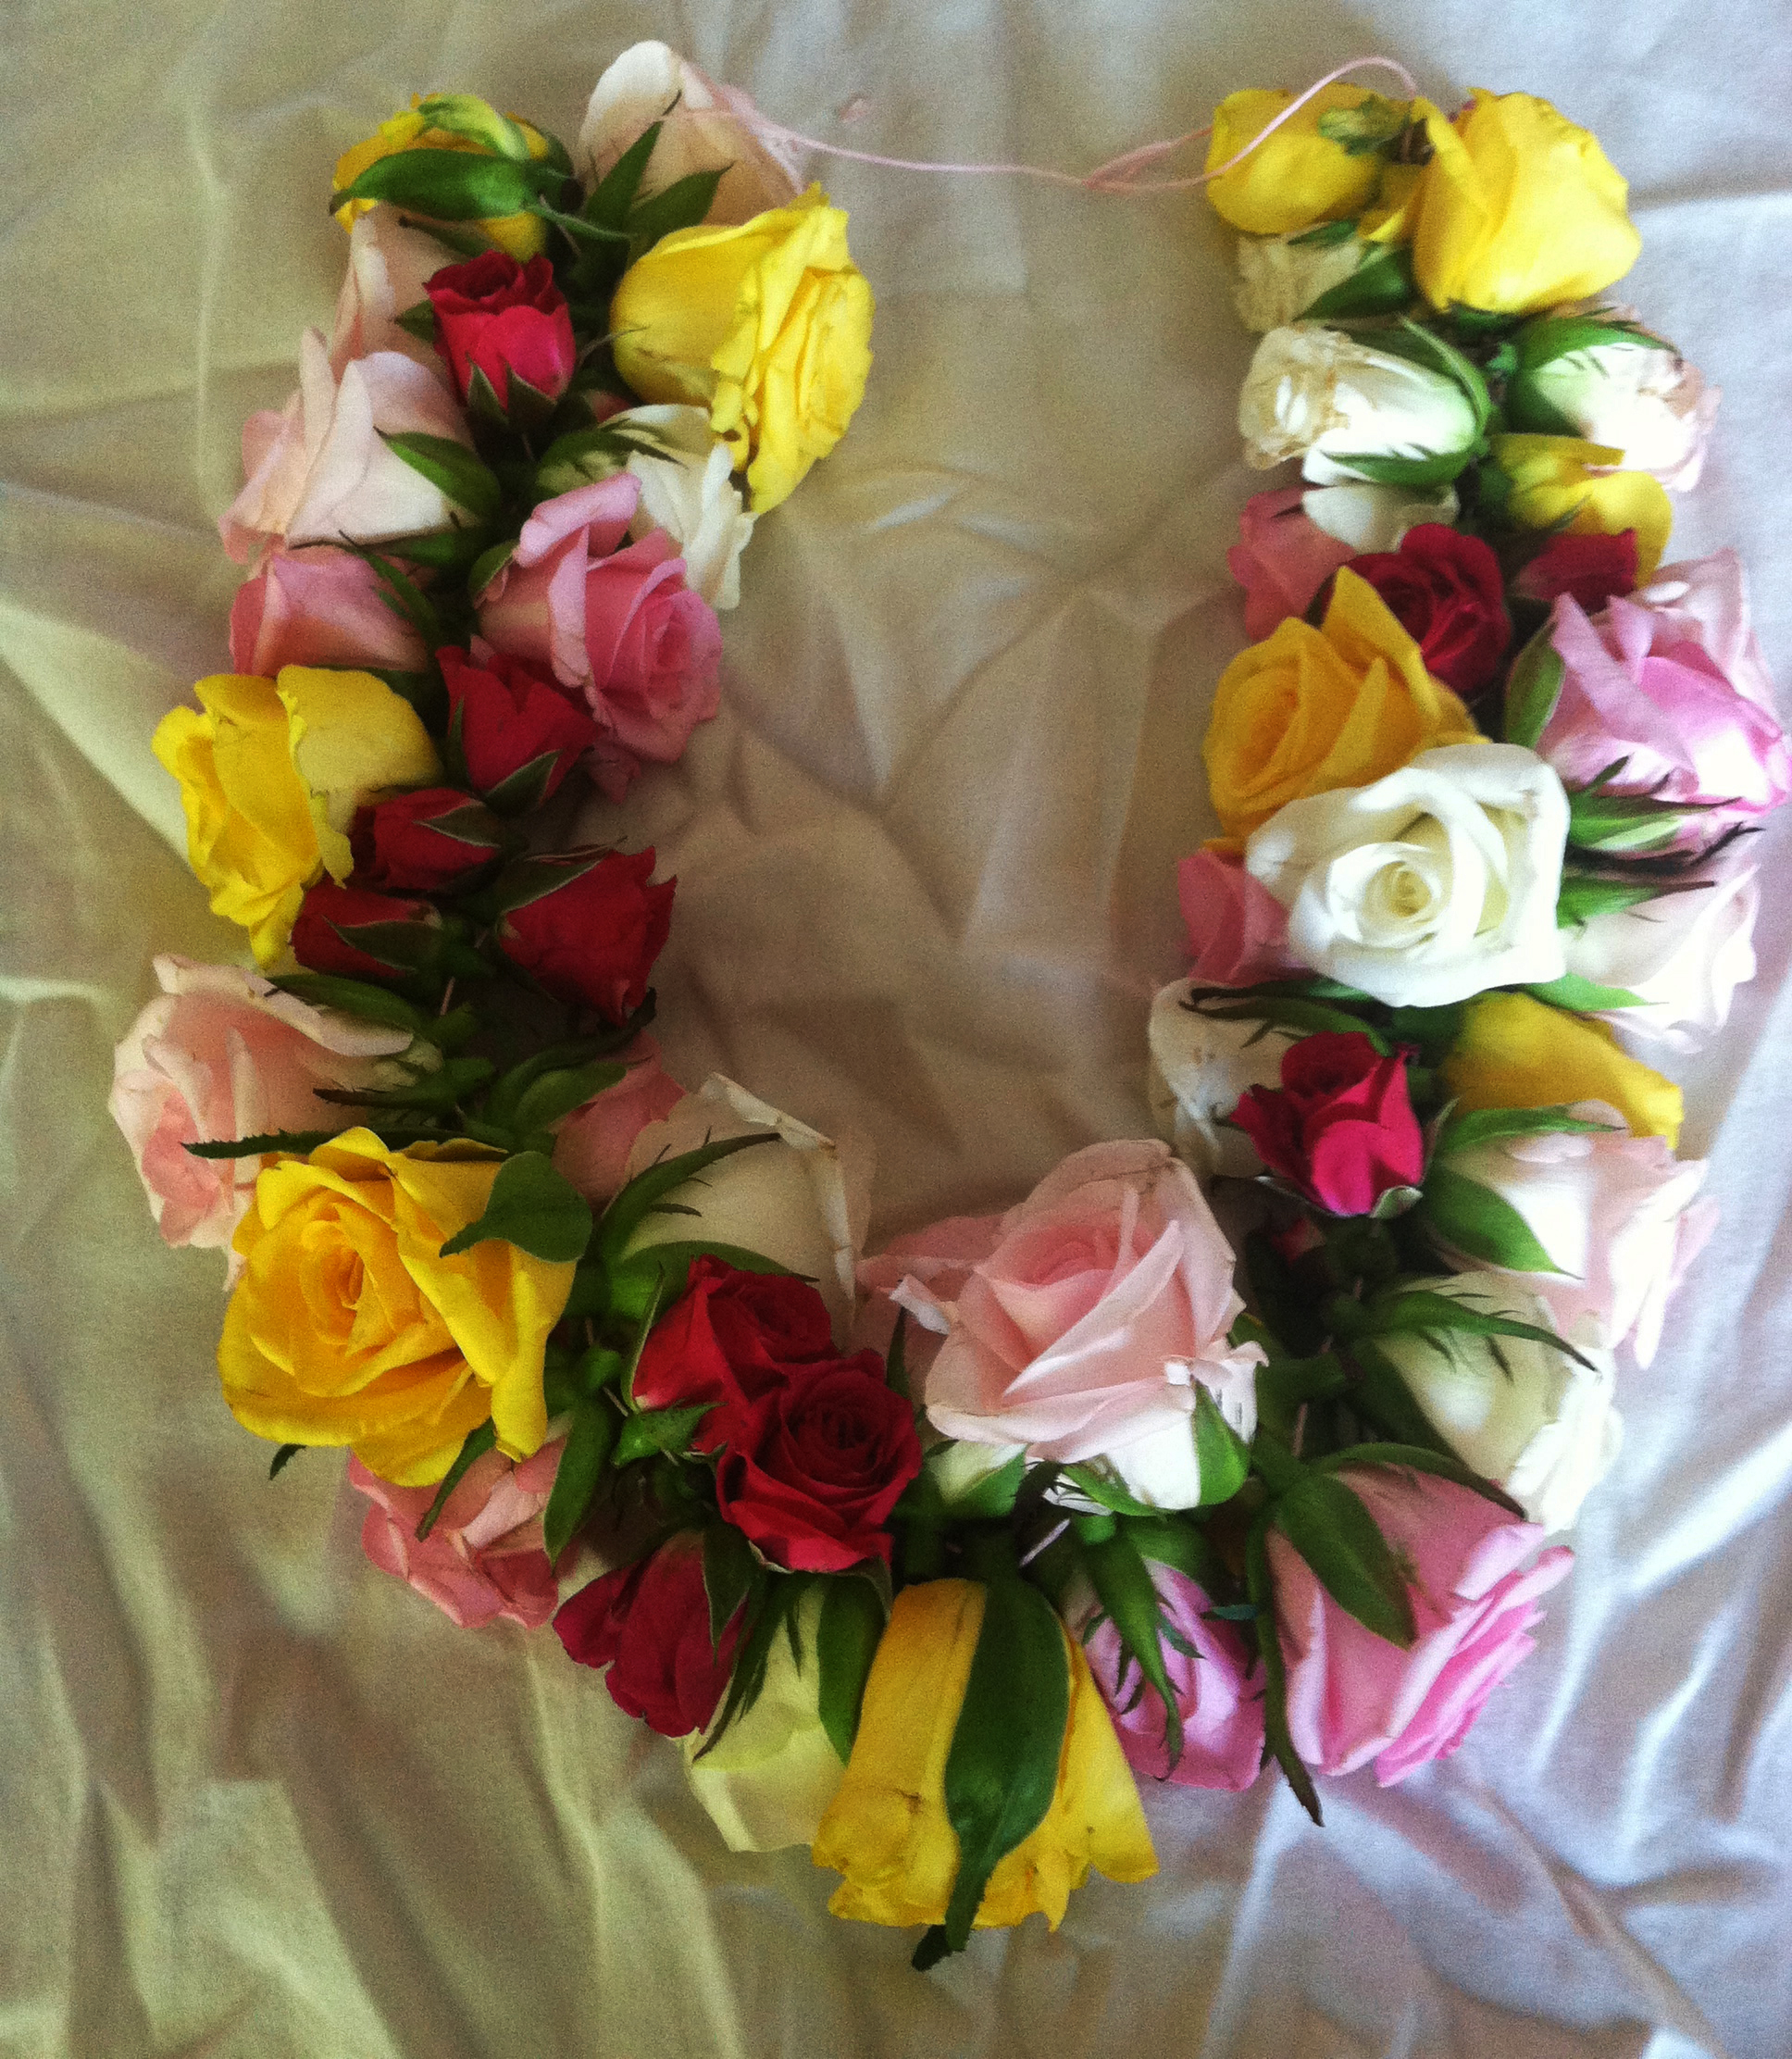 How to make a lei a fresh flower lei with roses go hippie chic rose lei garland izmirmasajfo Gallery